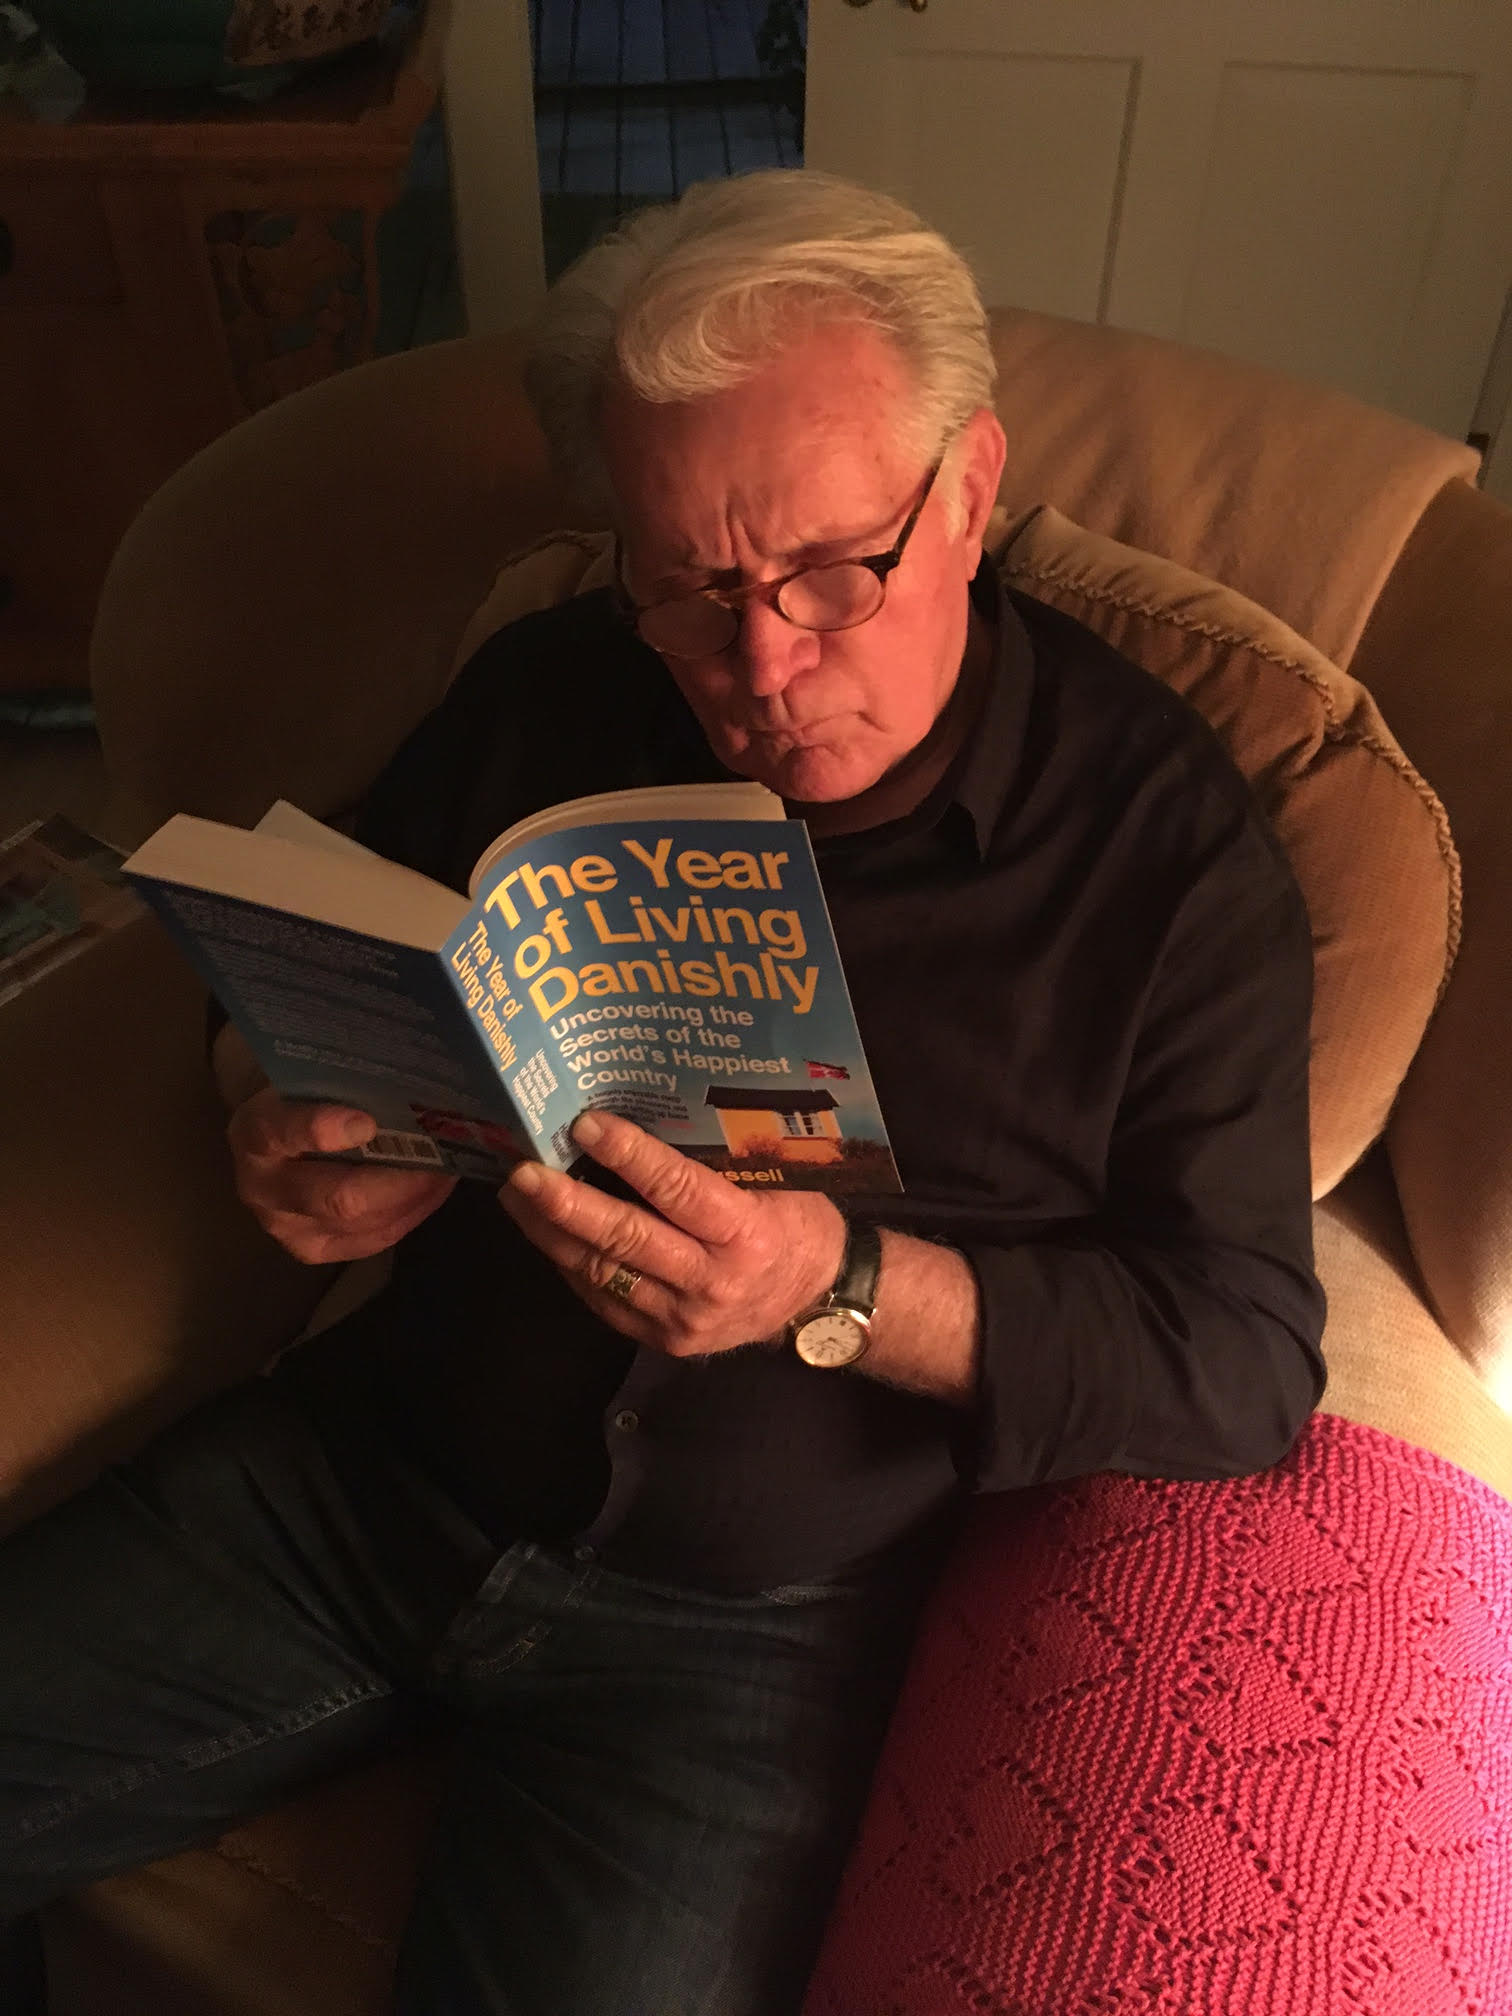 Martin Sheen reading The Year ofLiving Danishly